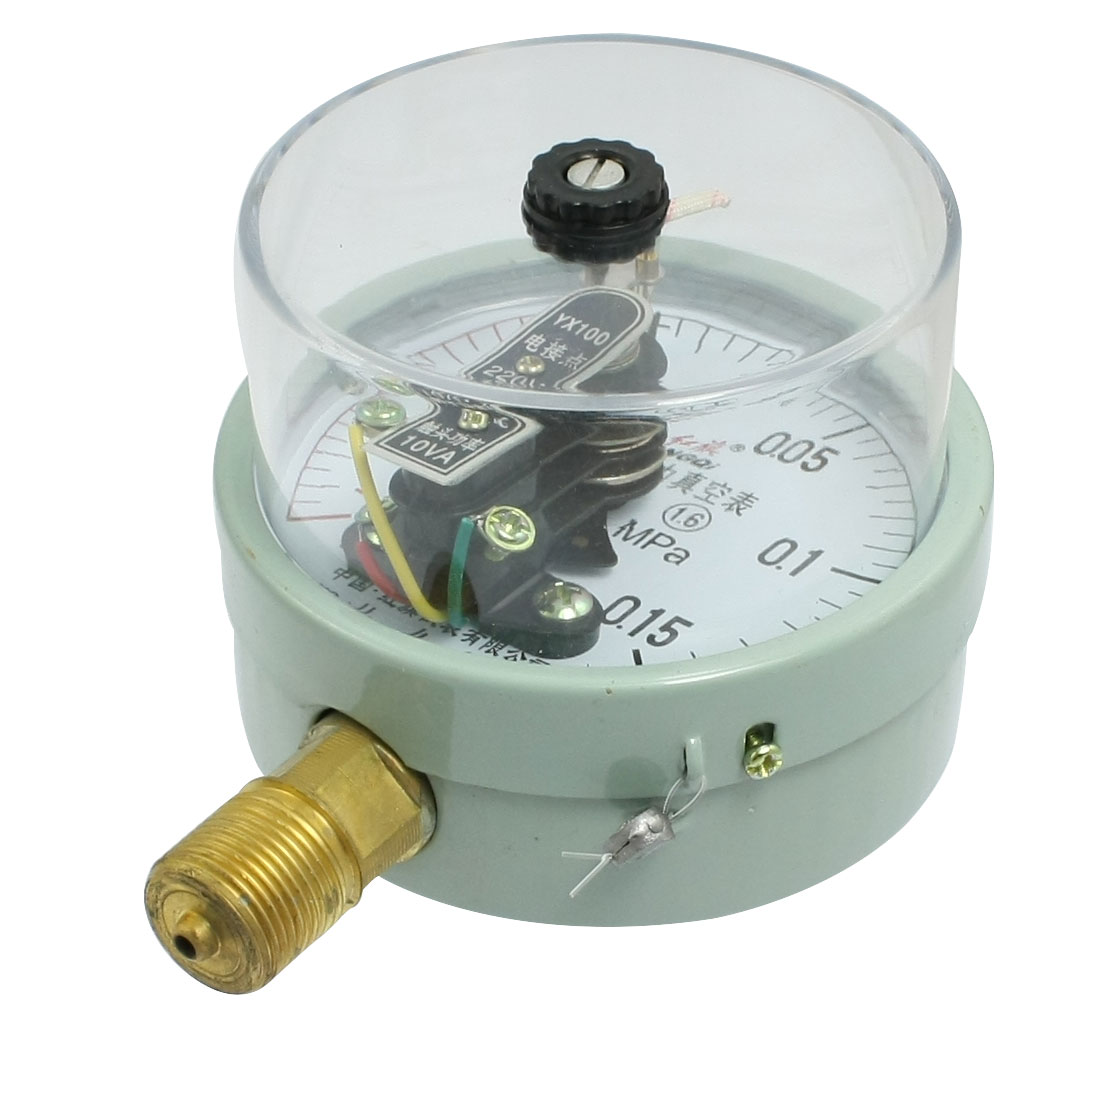 "AC 220/380V 10VA PT 1/2"" Electric Contact Pressure Vacuum Gauge -0.1-0.16MPa"